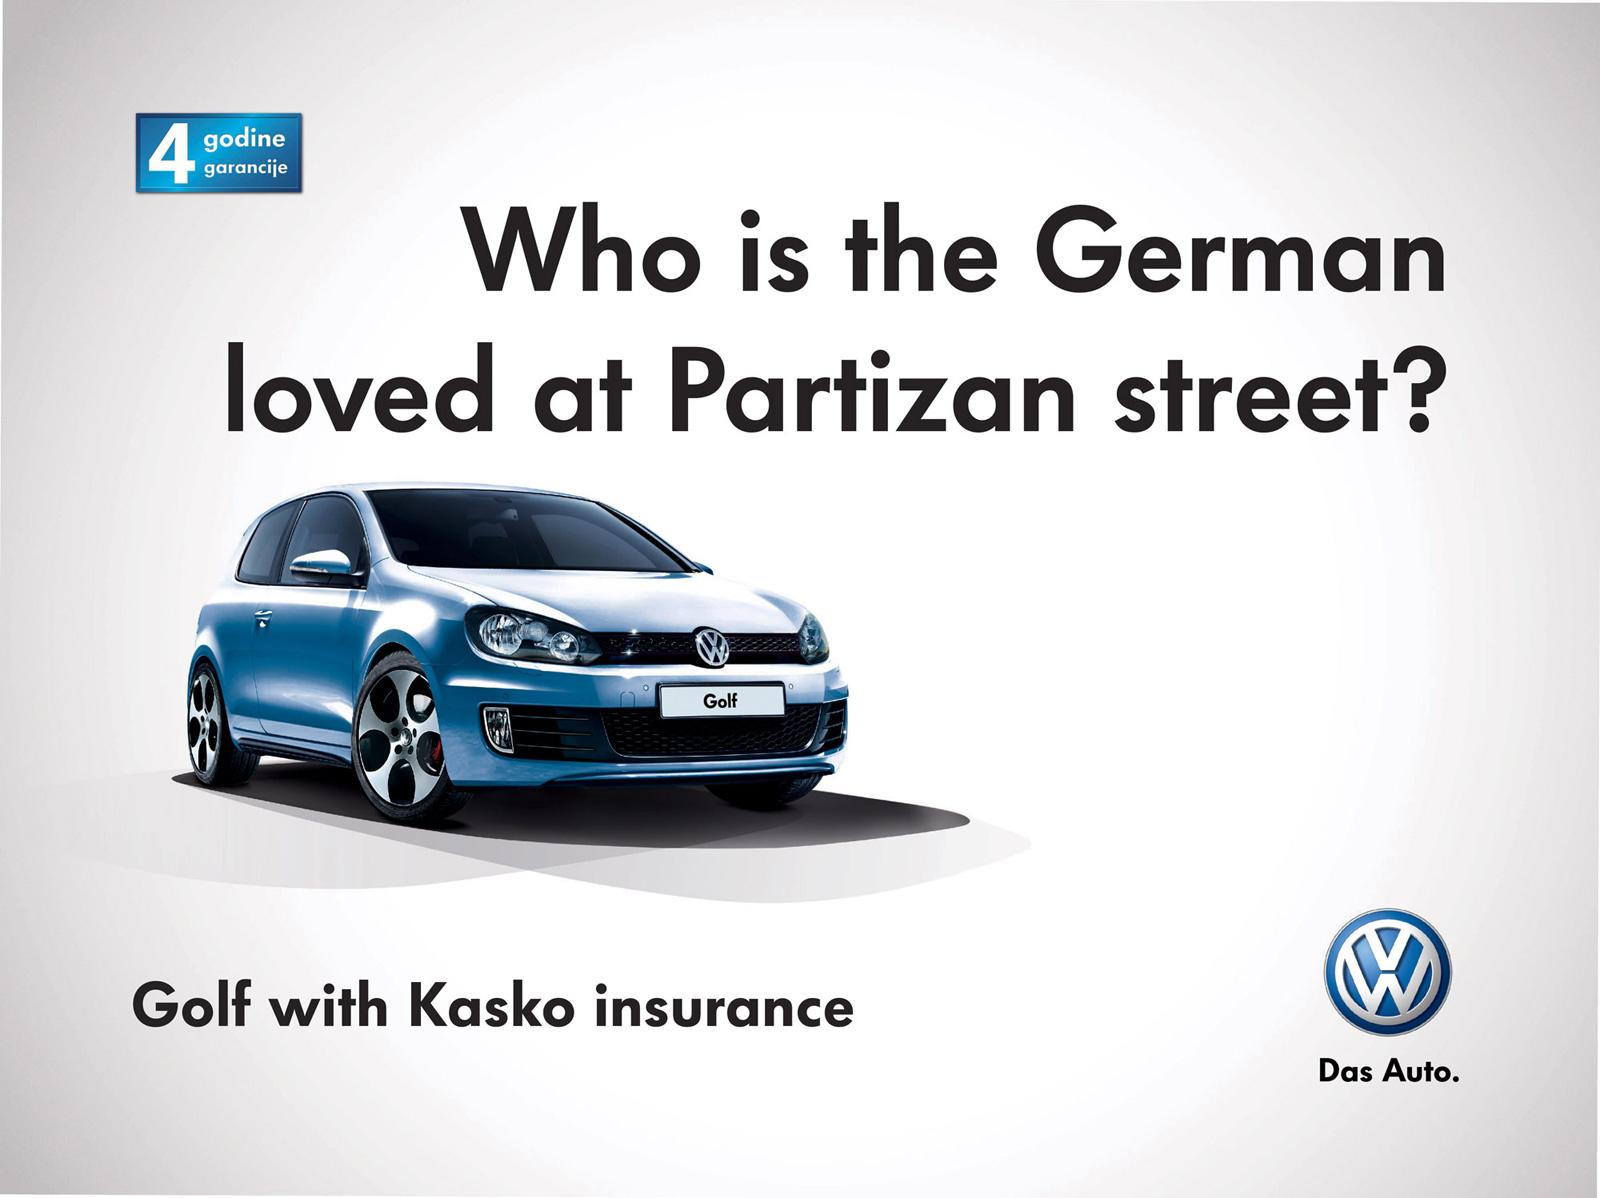 Volkswagen Outdoor Ad -  Who is who?, 4